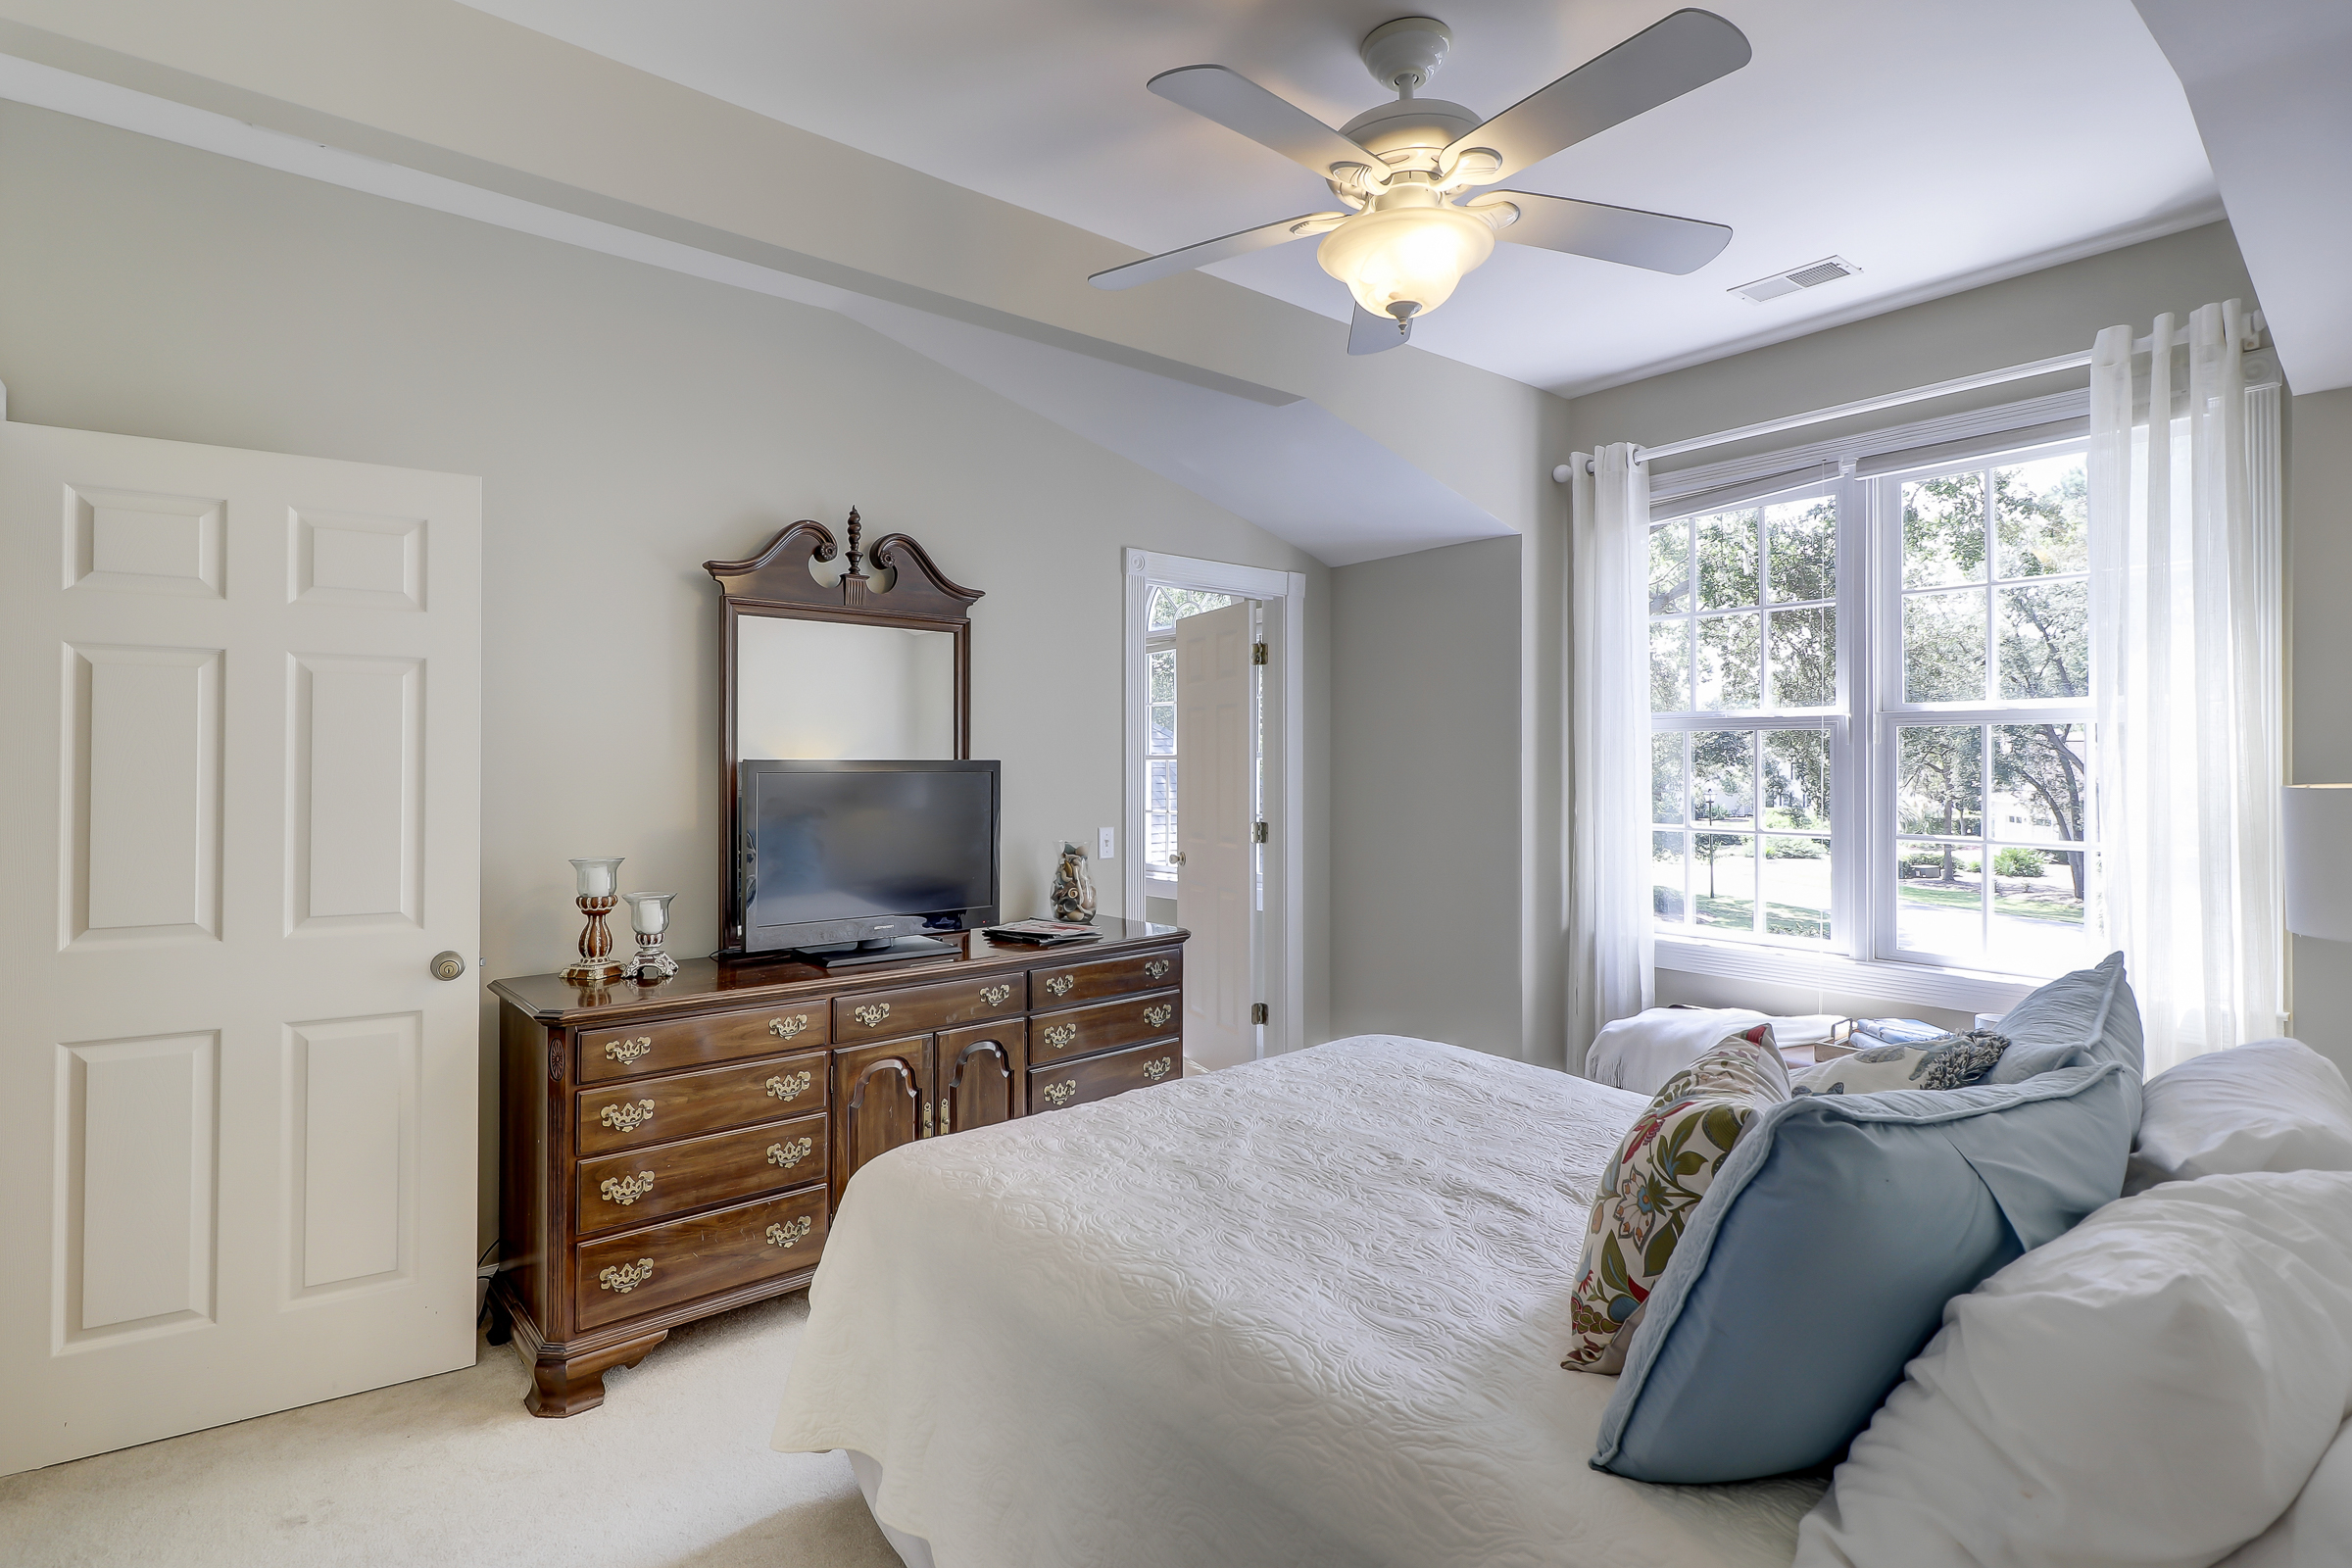 The upstairs bedrooms are very spacious and private. This bedroom offers a large walk in closet. The corner door enters a Jack and Jill Bath and the dormer windows overlook the front yard. 314 Fort Howell Dr - Palmetto Hall -  Hilton Head